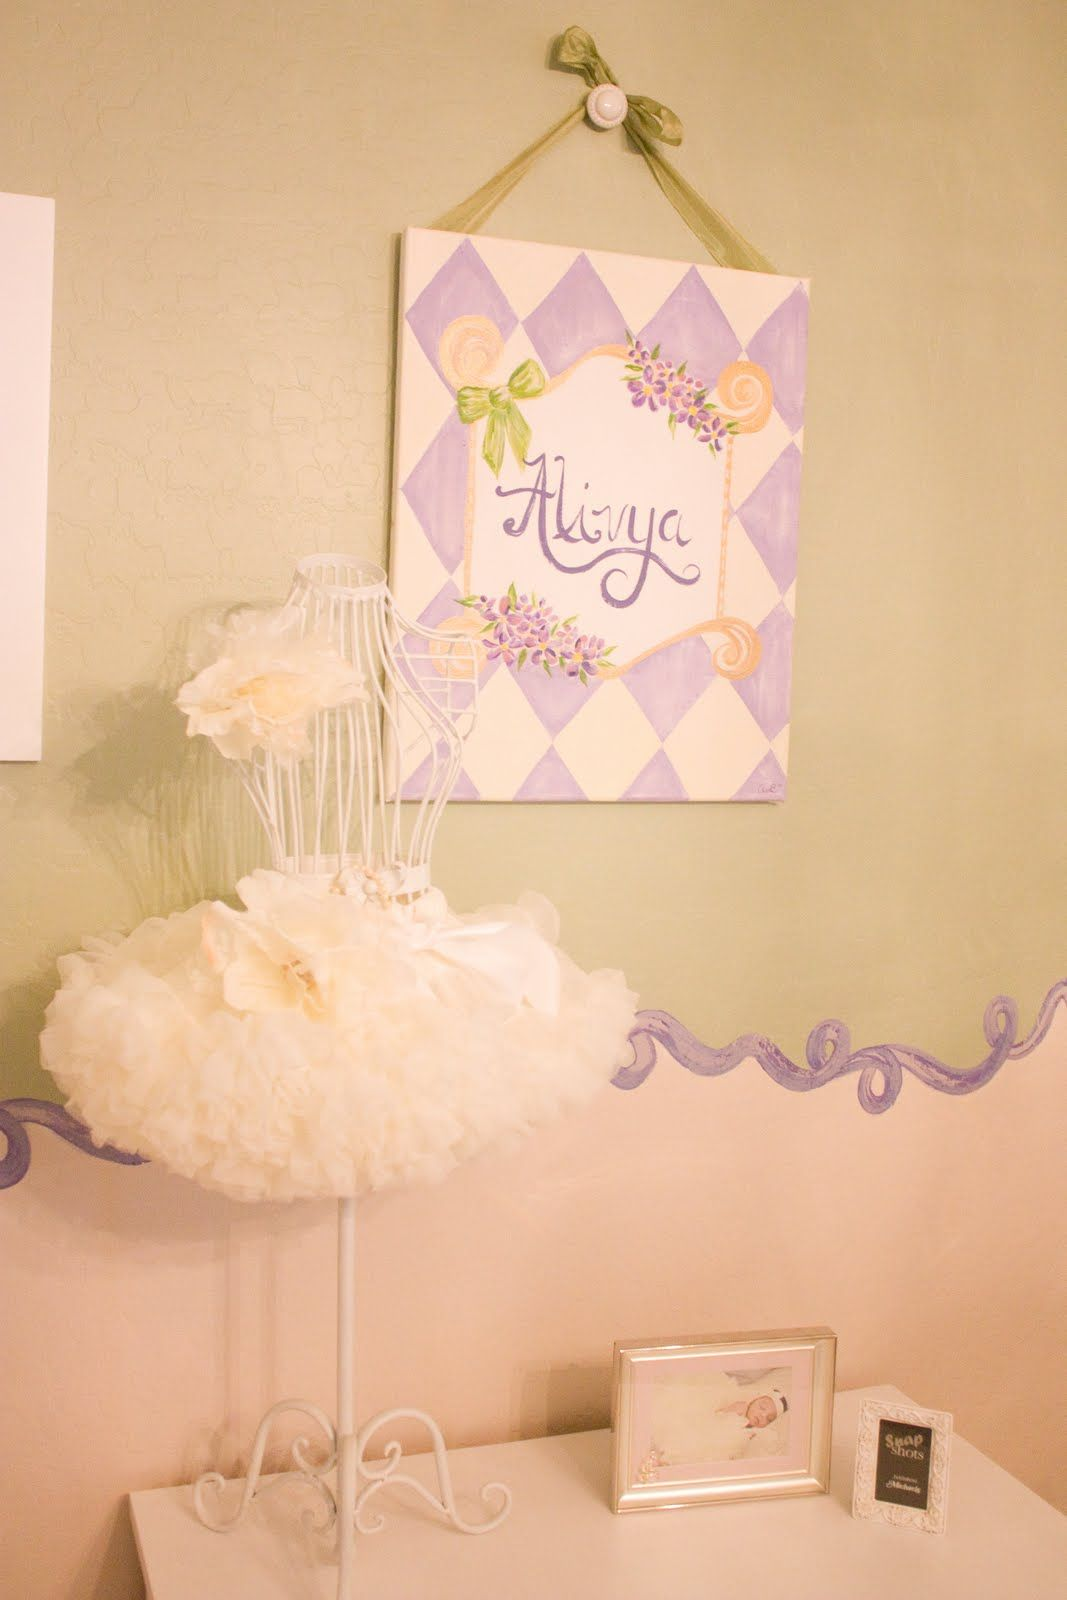 A Place for Us: Alivya's Nursery Part 1